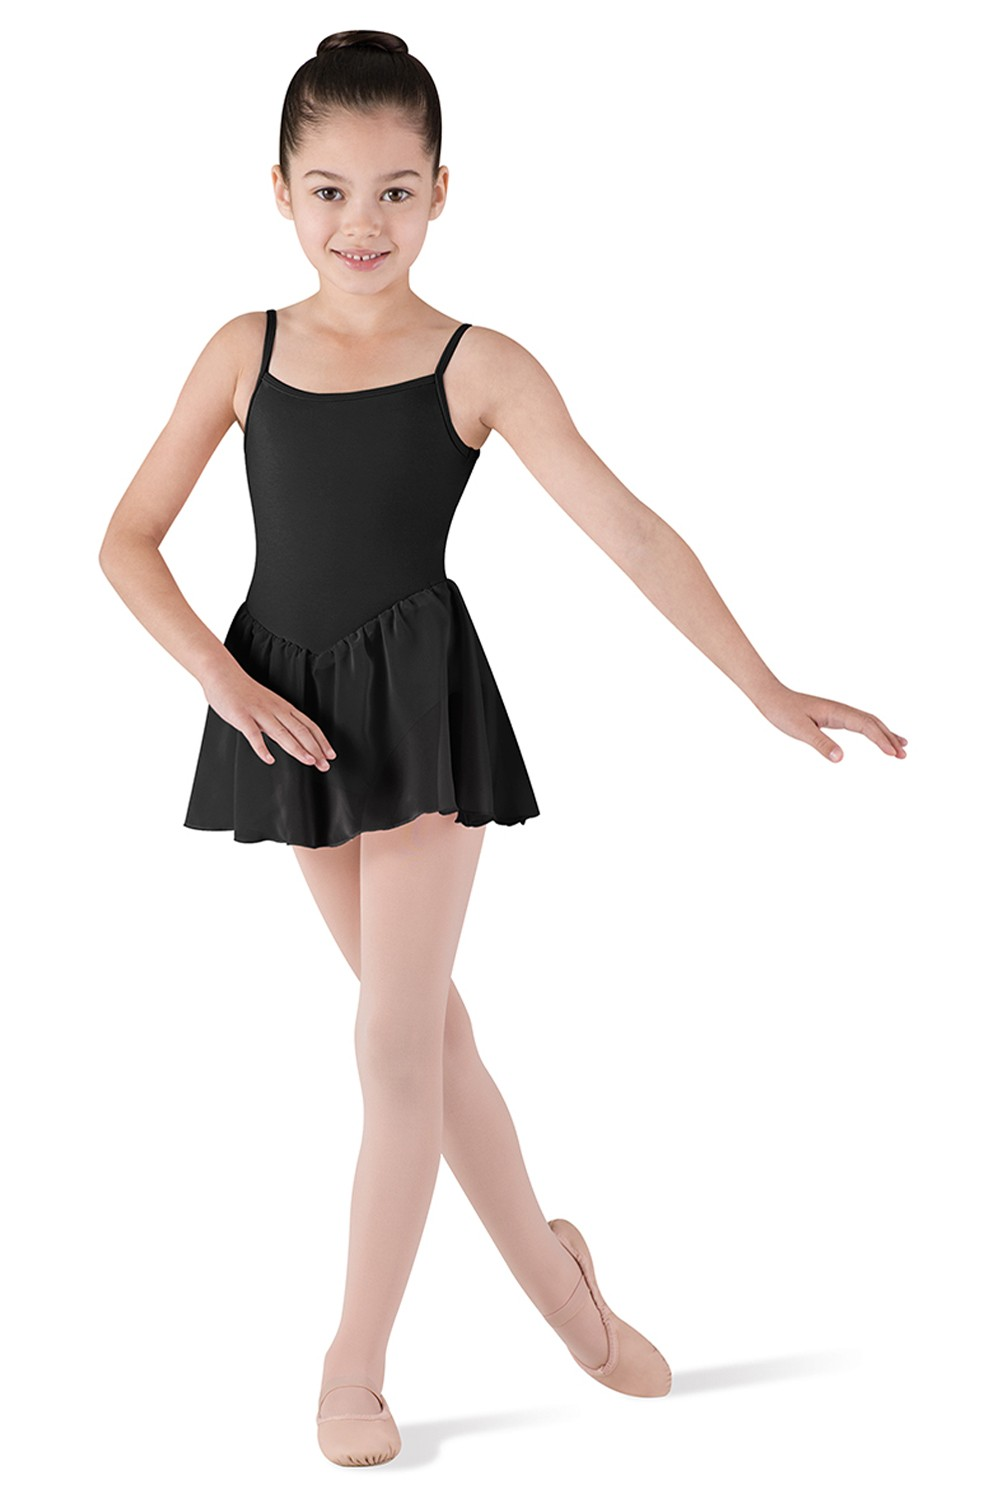 Blossom Children's Dance Leotards